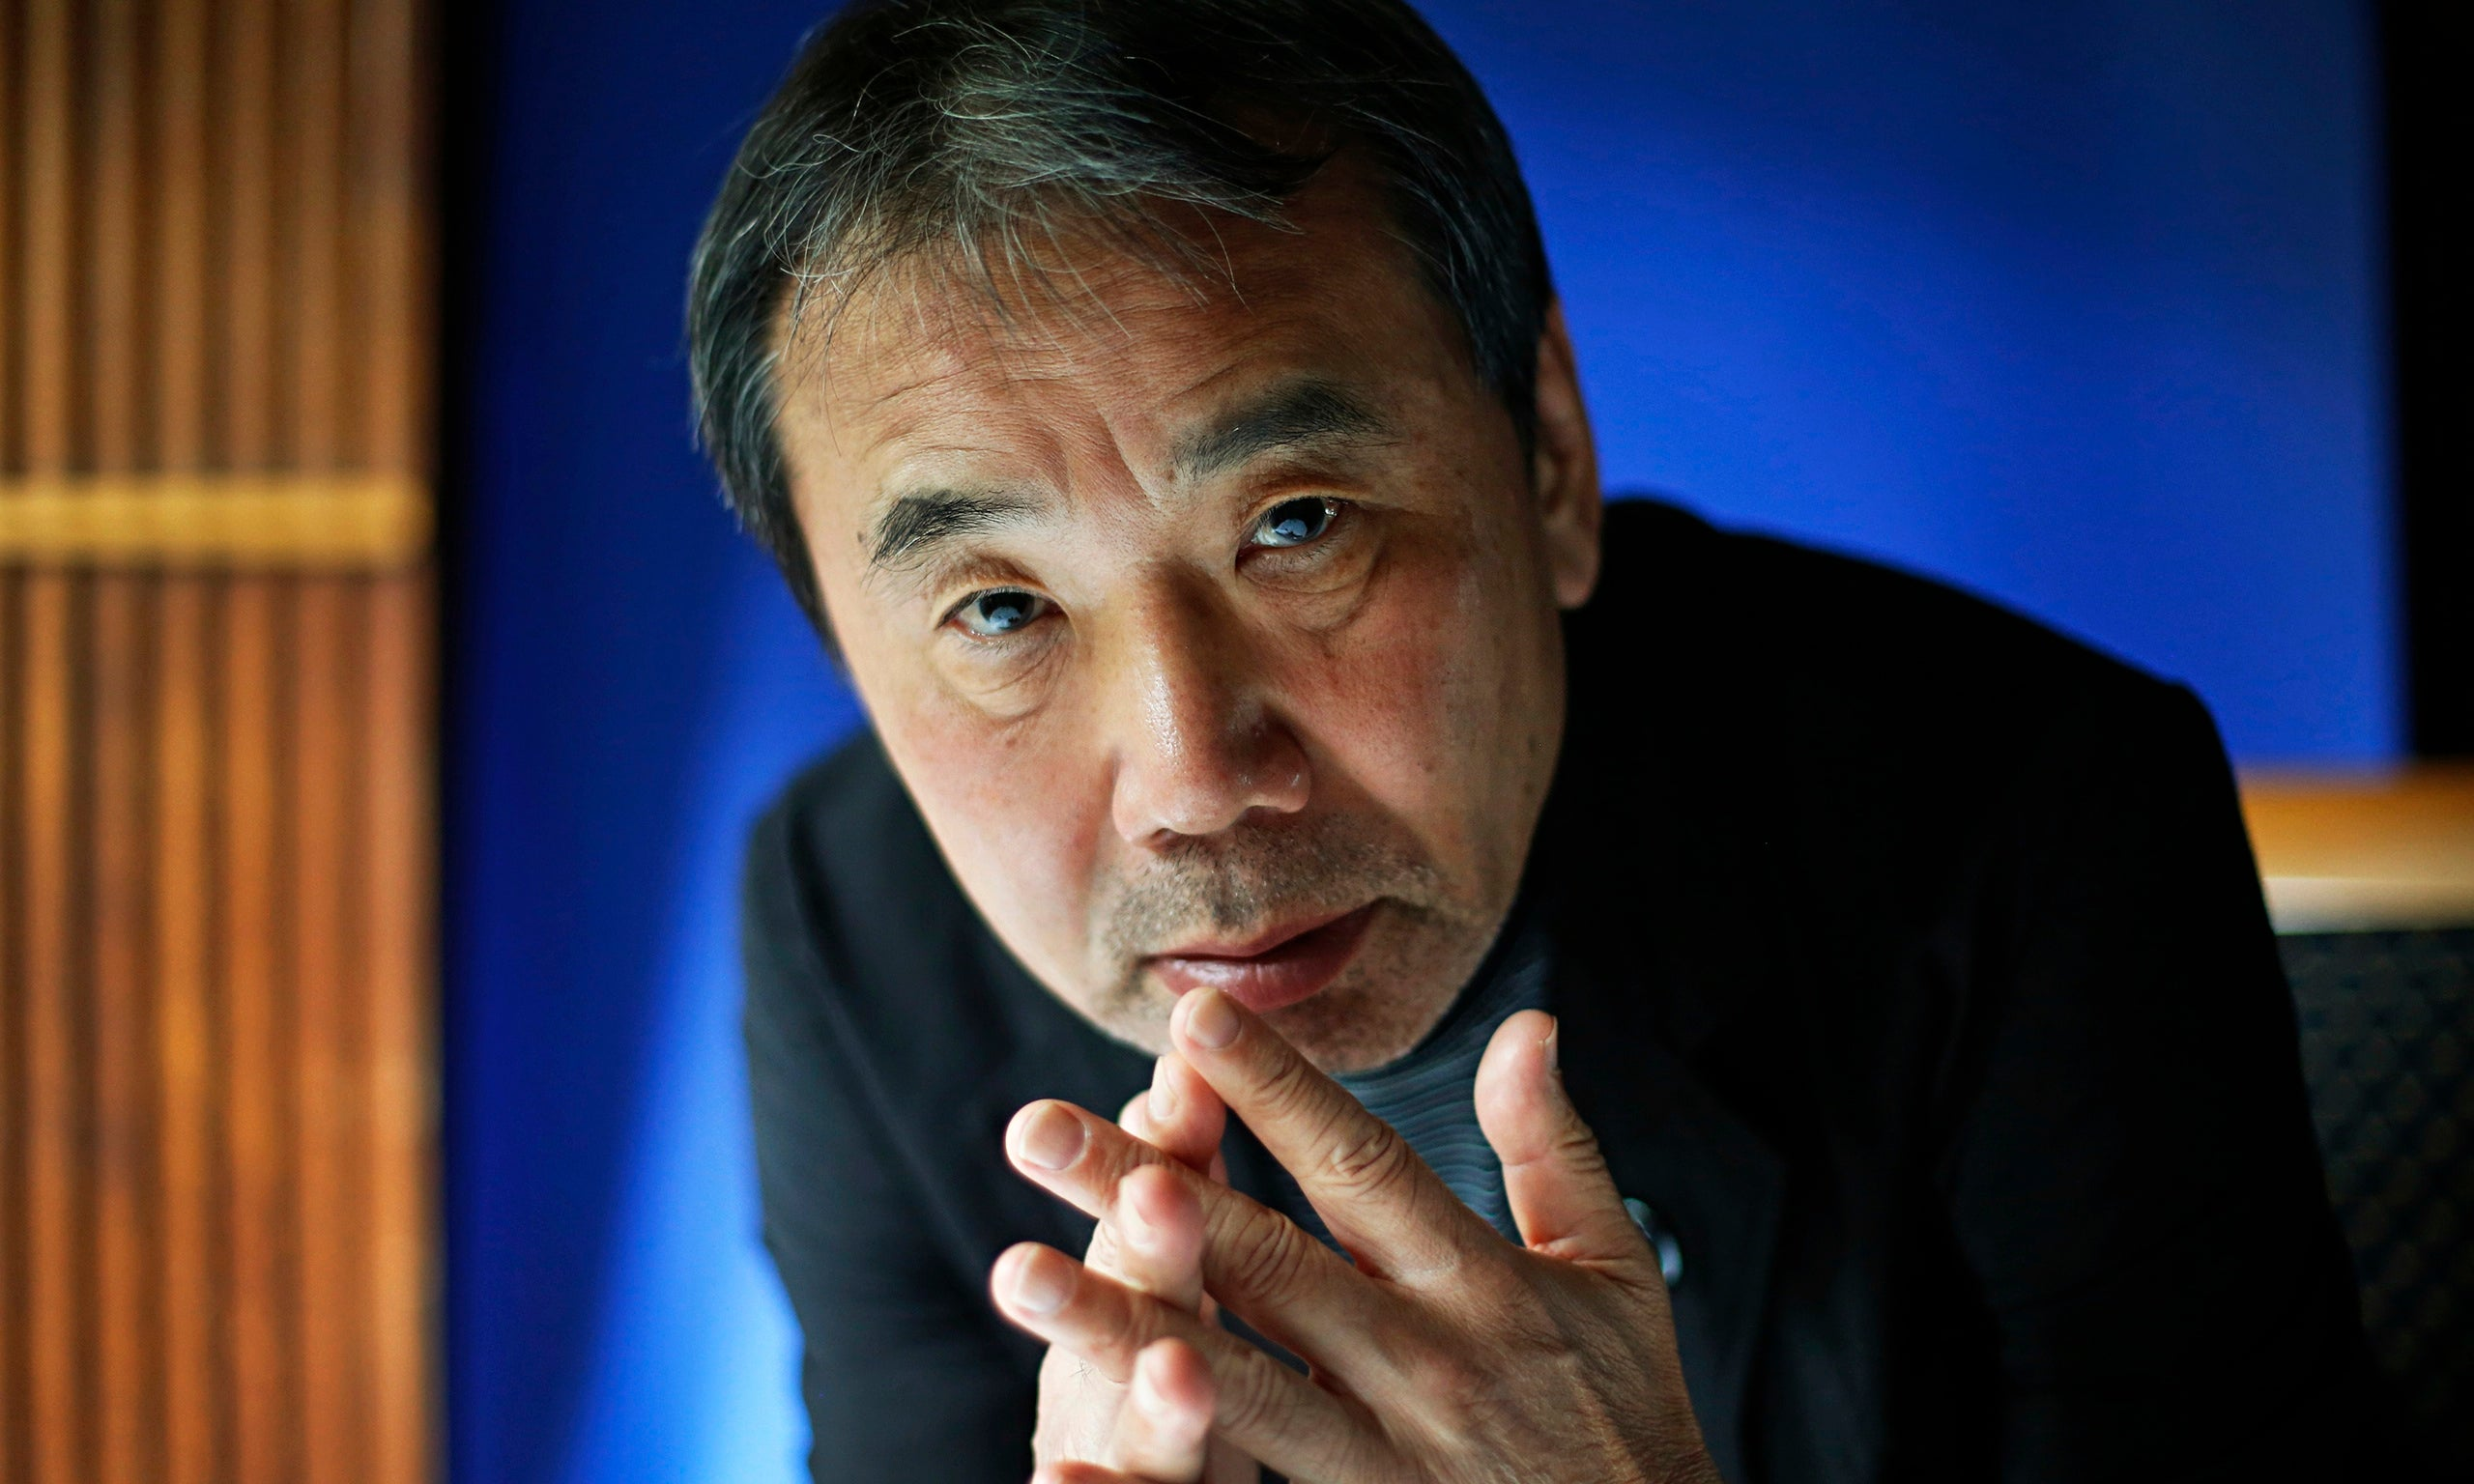 Haruki Murakami earned a  million dollar salary, leaving the net worth at 10 million in 2017